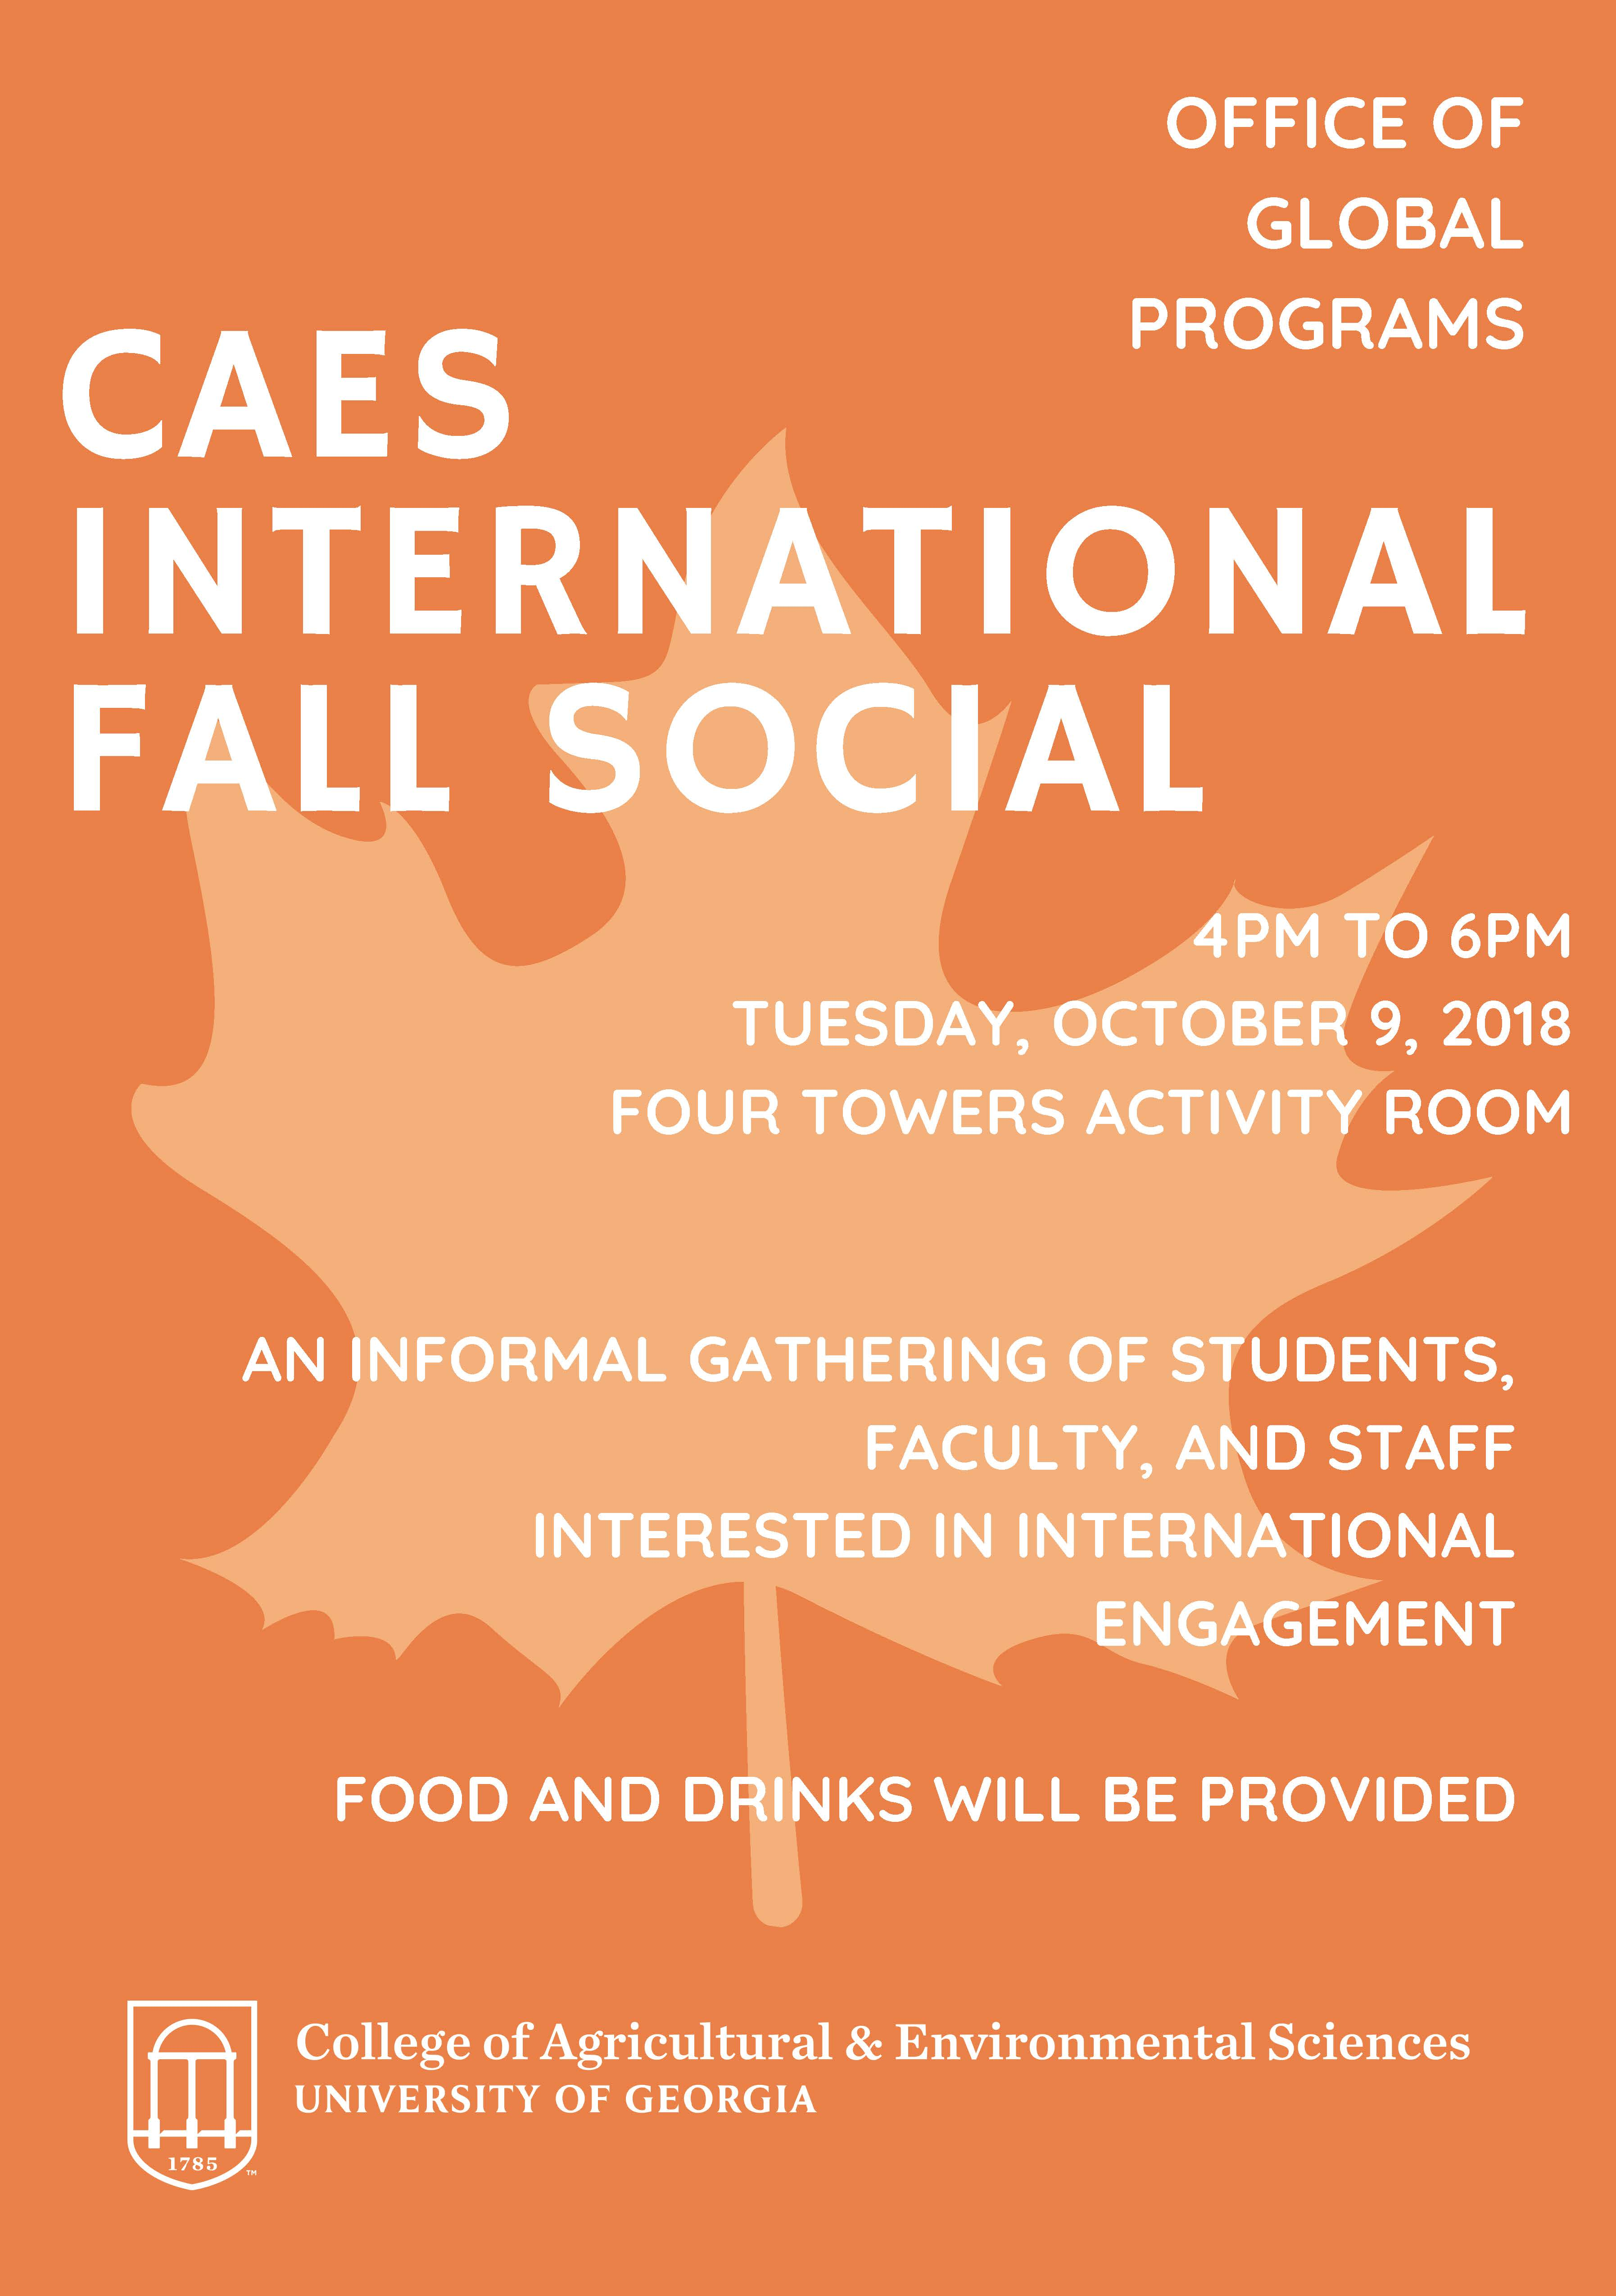 Join us for the CAES International Fall Social hosted by the Office of Global Programs